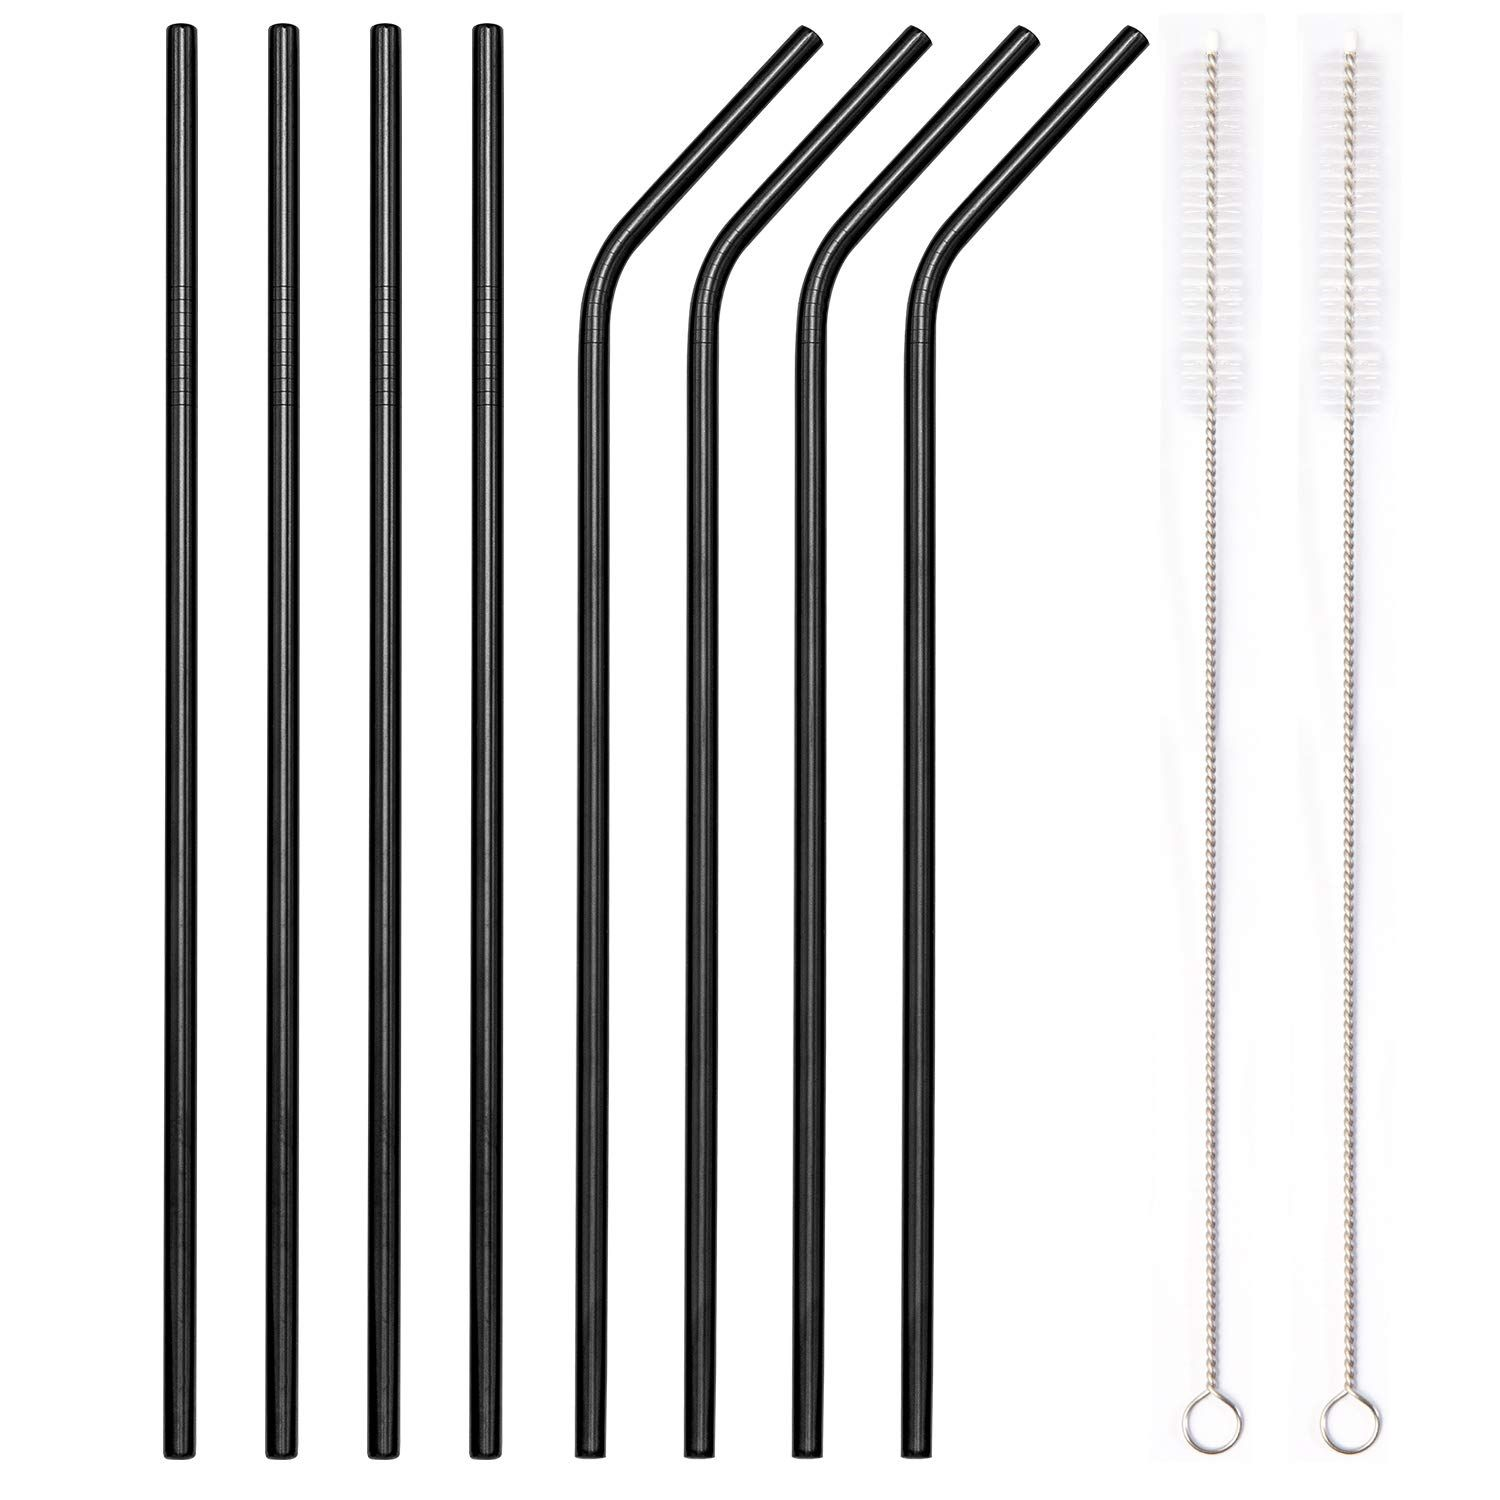 Reusable Stainless Steel Metal Straws Set Ultra Long 10.5 Inch Wide 8mm w// Brush